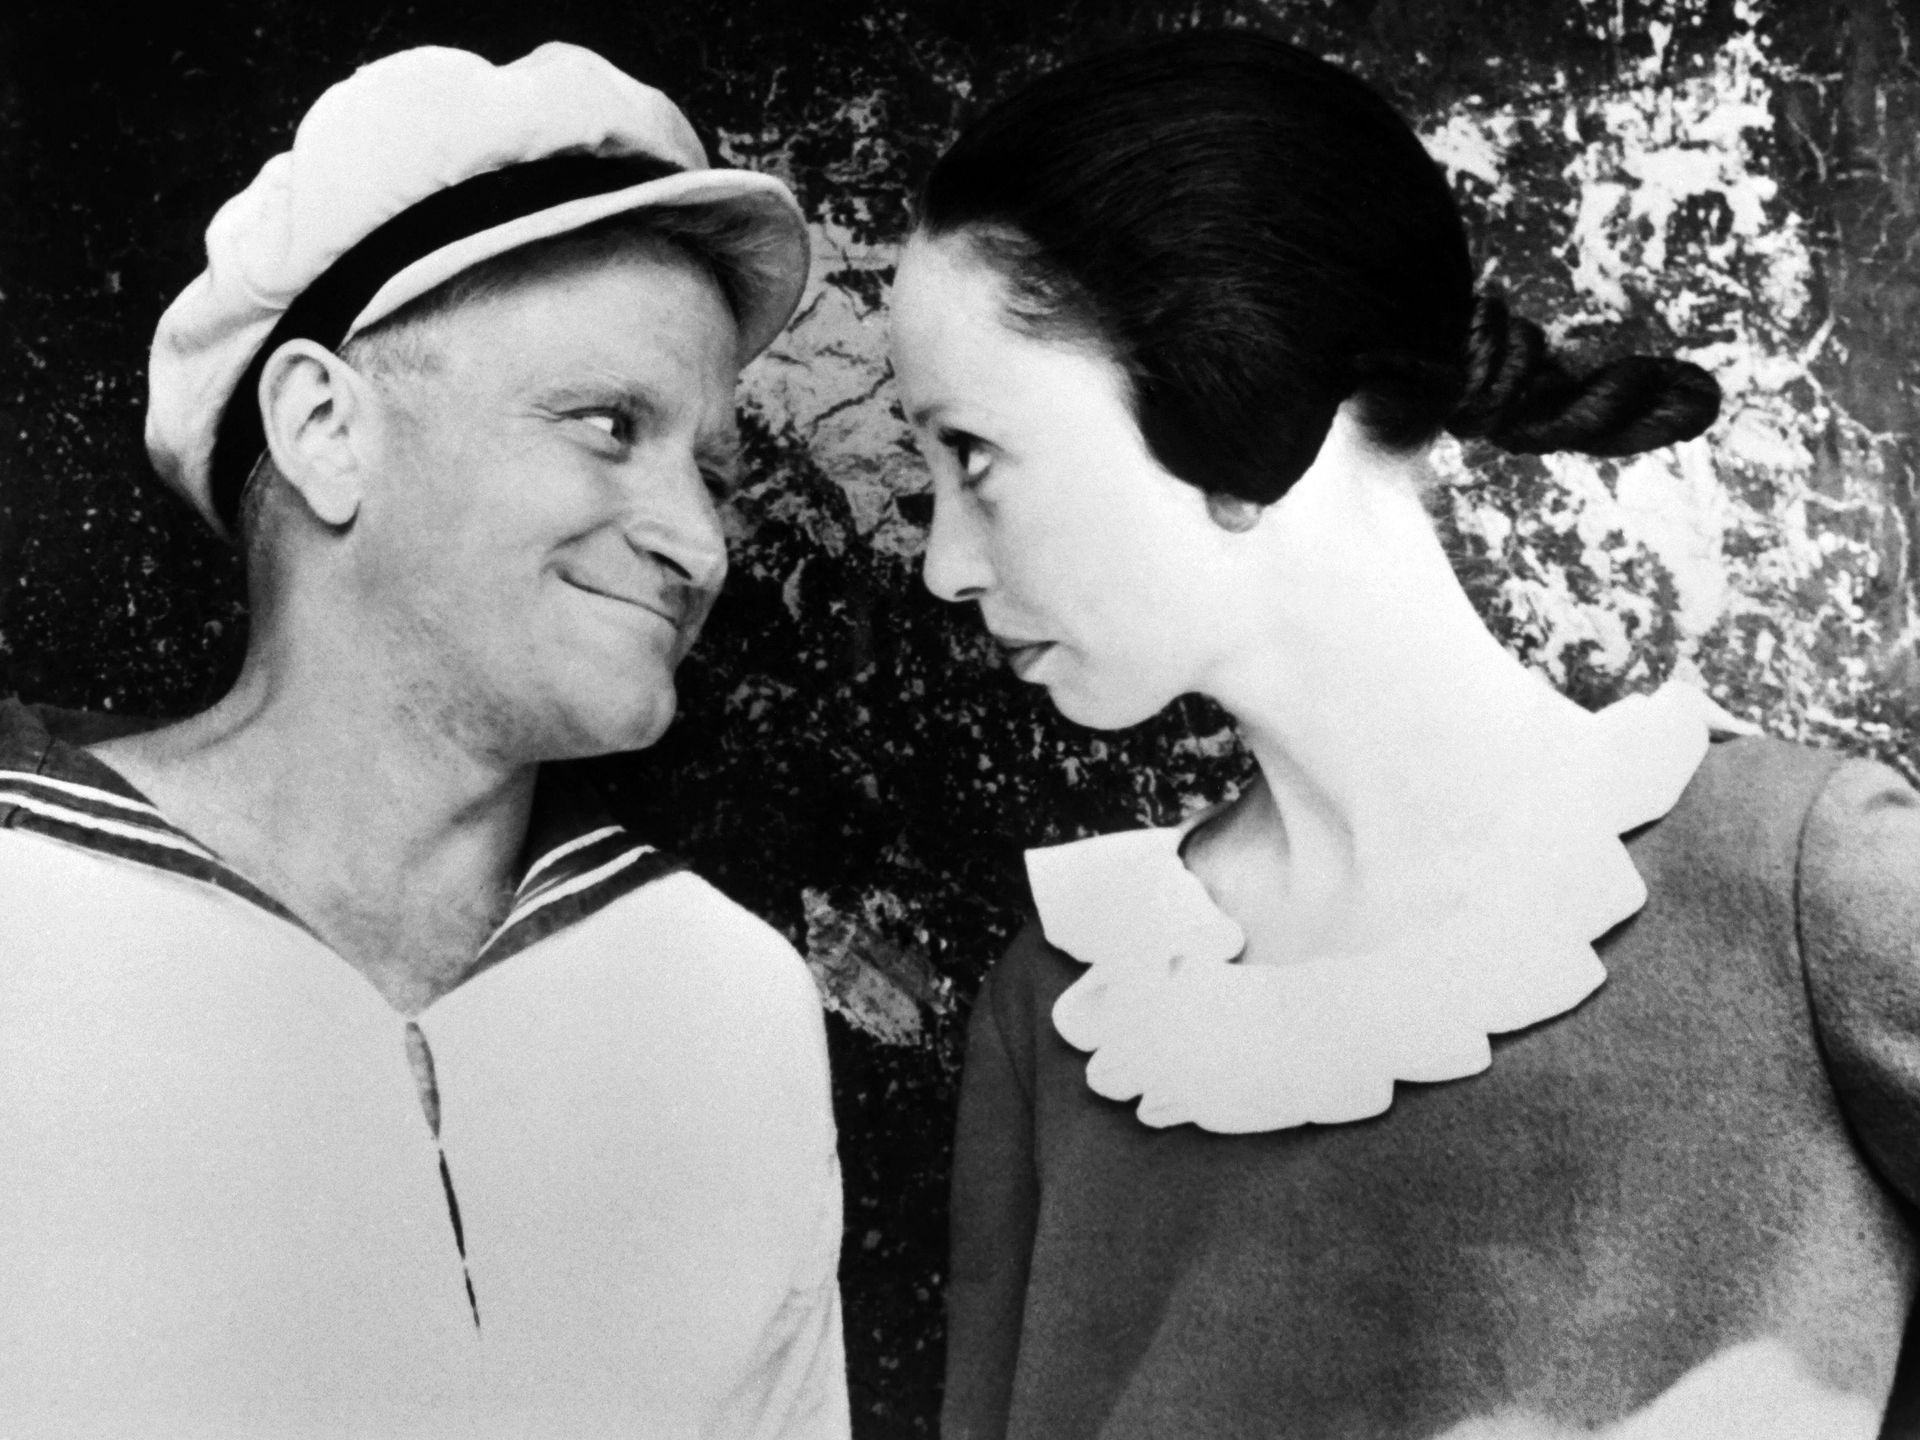 Robin Williams Death Leaves Hollywood Fans Stunned Robin Williams Robin Williams Death Popeye The Sailor Man Valerie velardi is an actress, known for popeye (1980) and the 36th annual golden globes awards (1979). pinterest